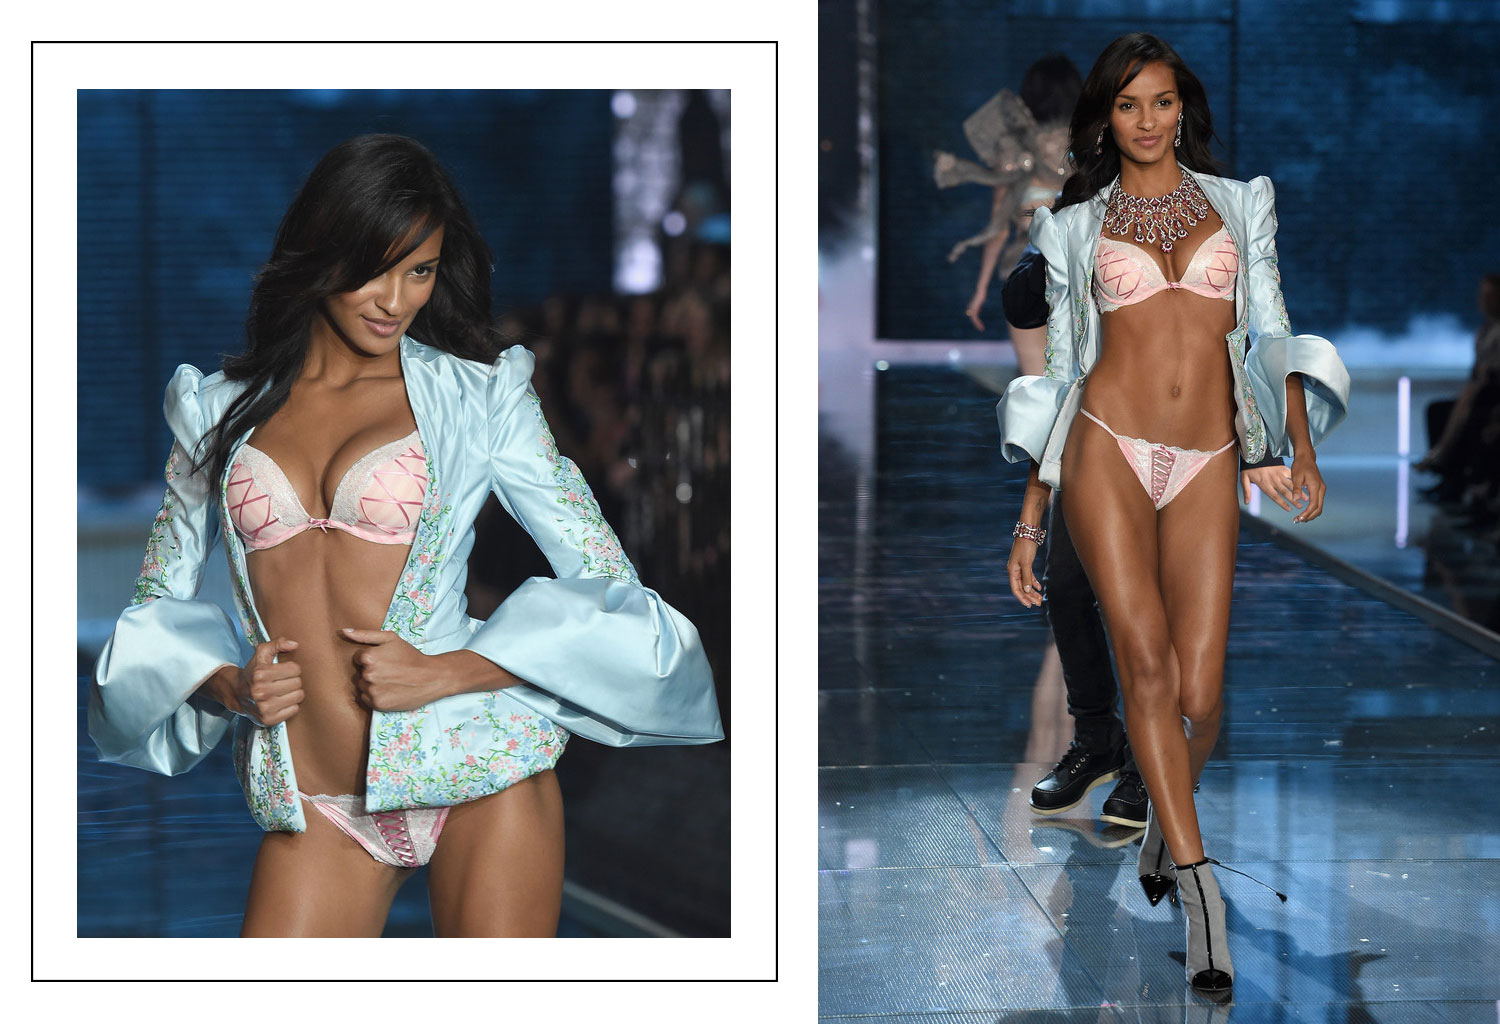 Victoria s Secret 2015 fashion show Gracie Calvalho